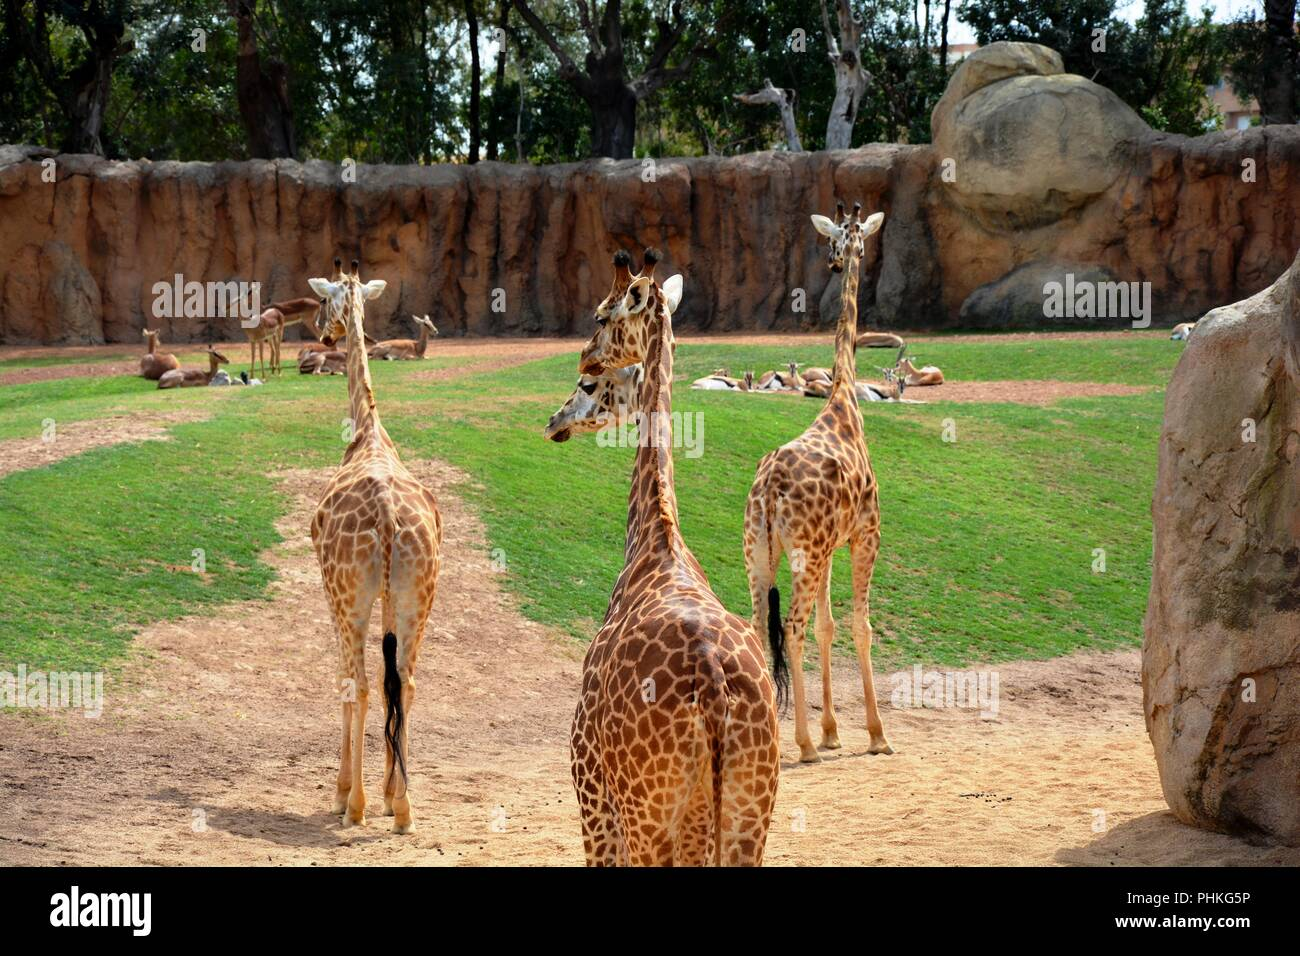 giraffes, one of two heads - Stock Image